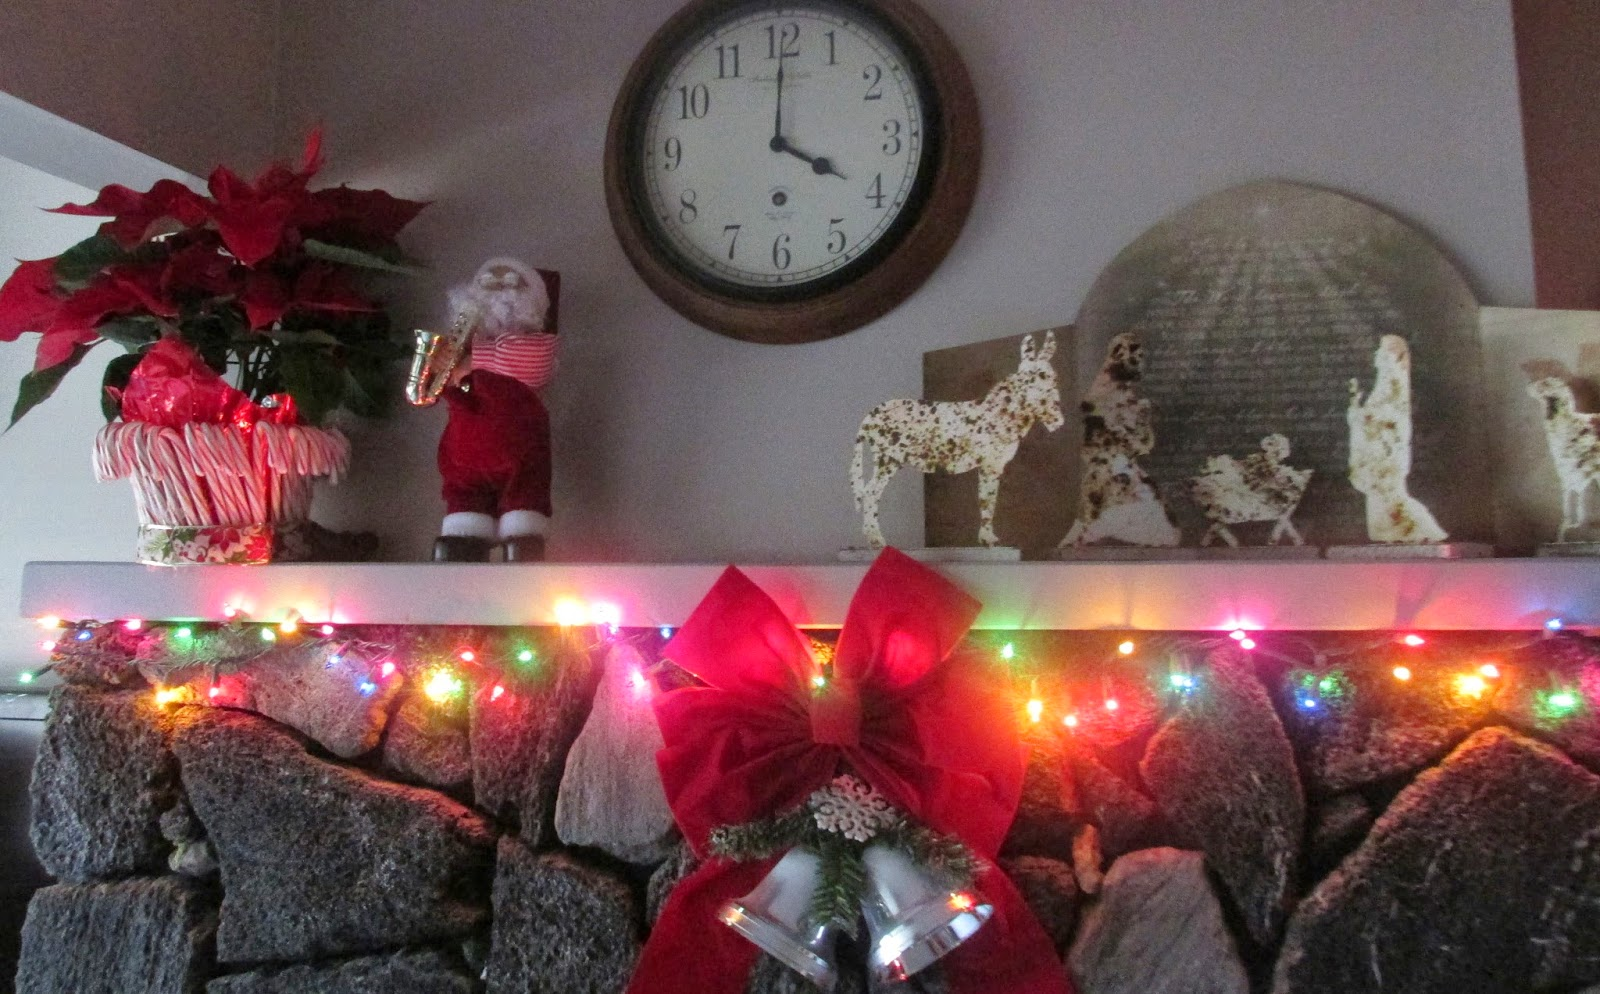 Decorations on the Mantle